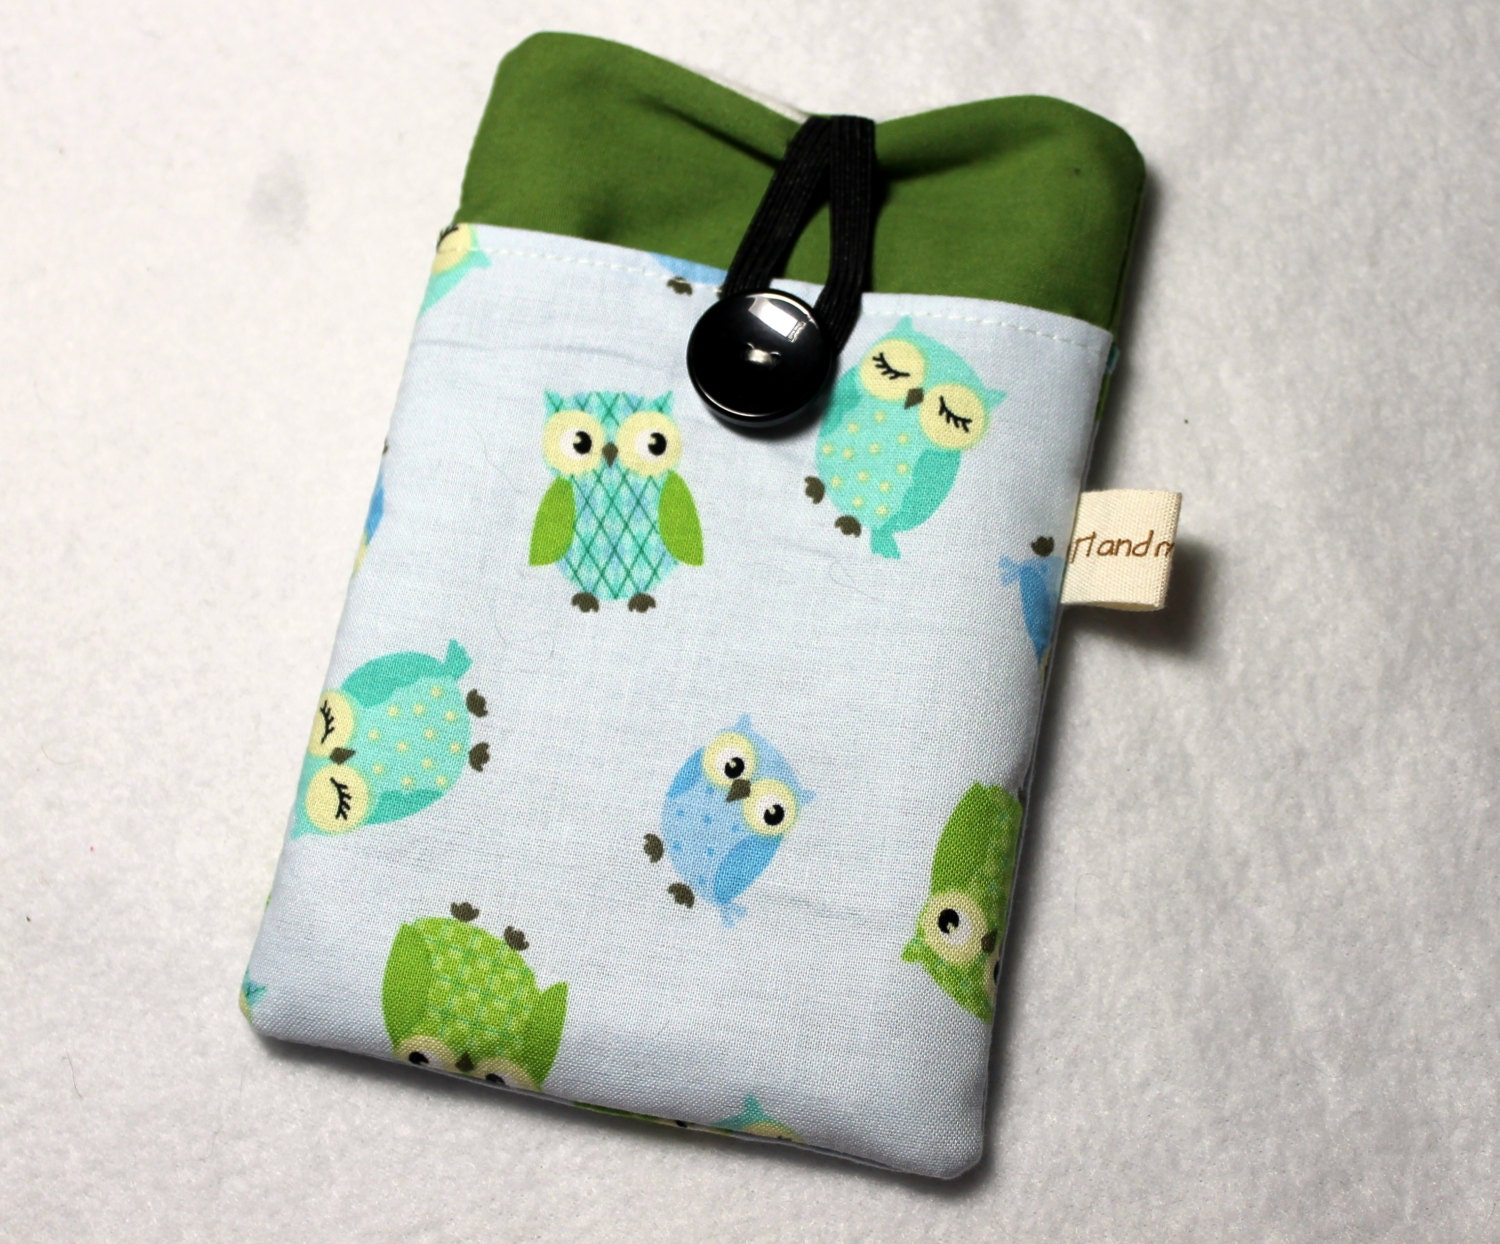 Fabric iPhone sleeve, iPhone case, iPhone pouch, iPod touch sleeve, green and blue owls - Enchantingcrafts